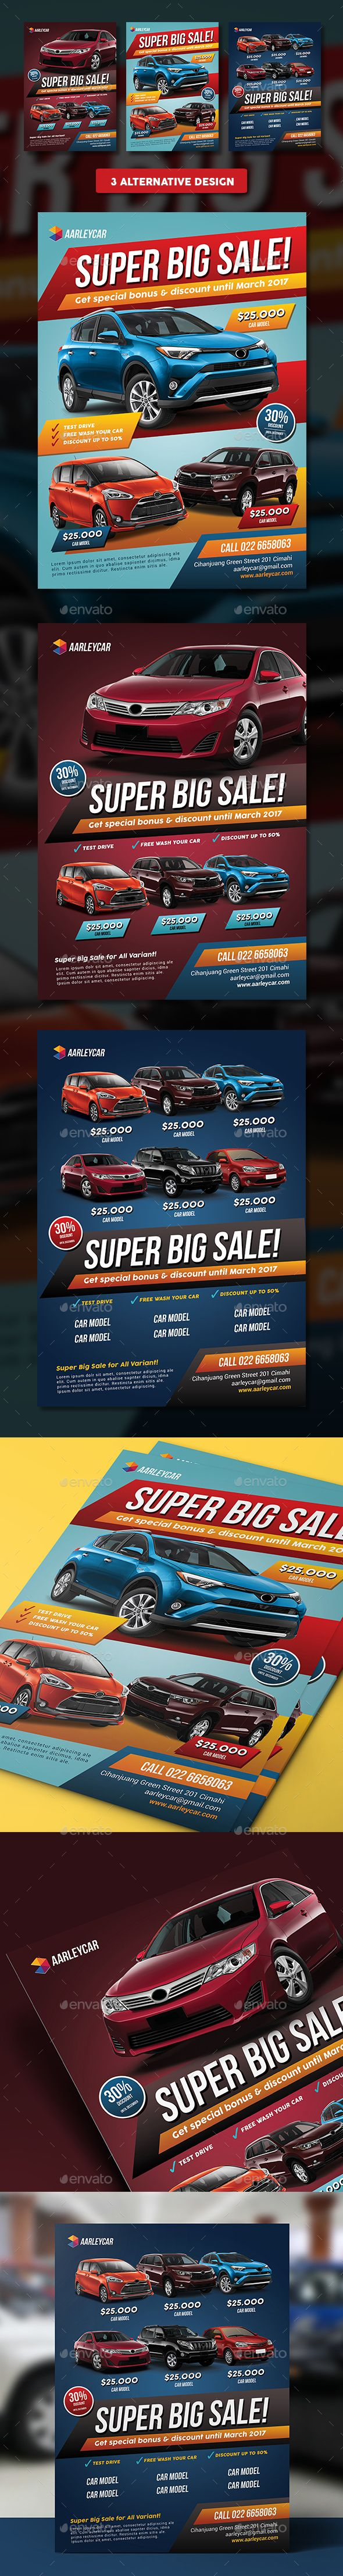 Car Sale Flyer  — PSD Template #red #discount • Download ➝ https://graphicriver.net/item/car-sale-flyer/18299358?ref=pxcr